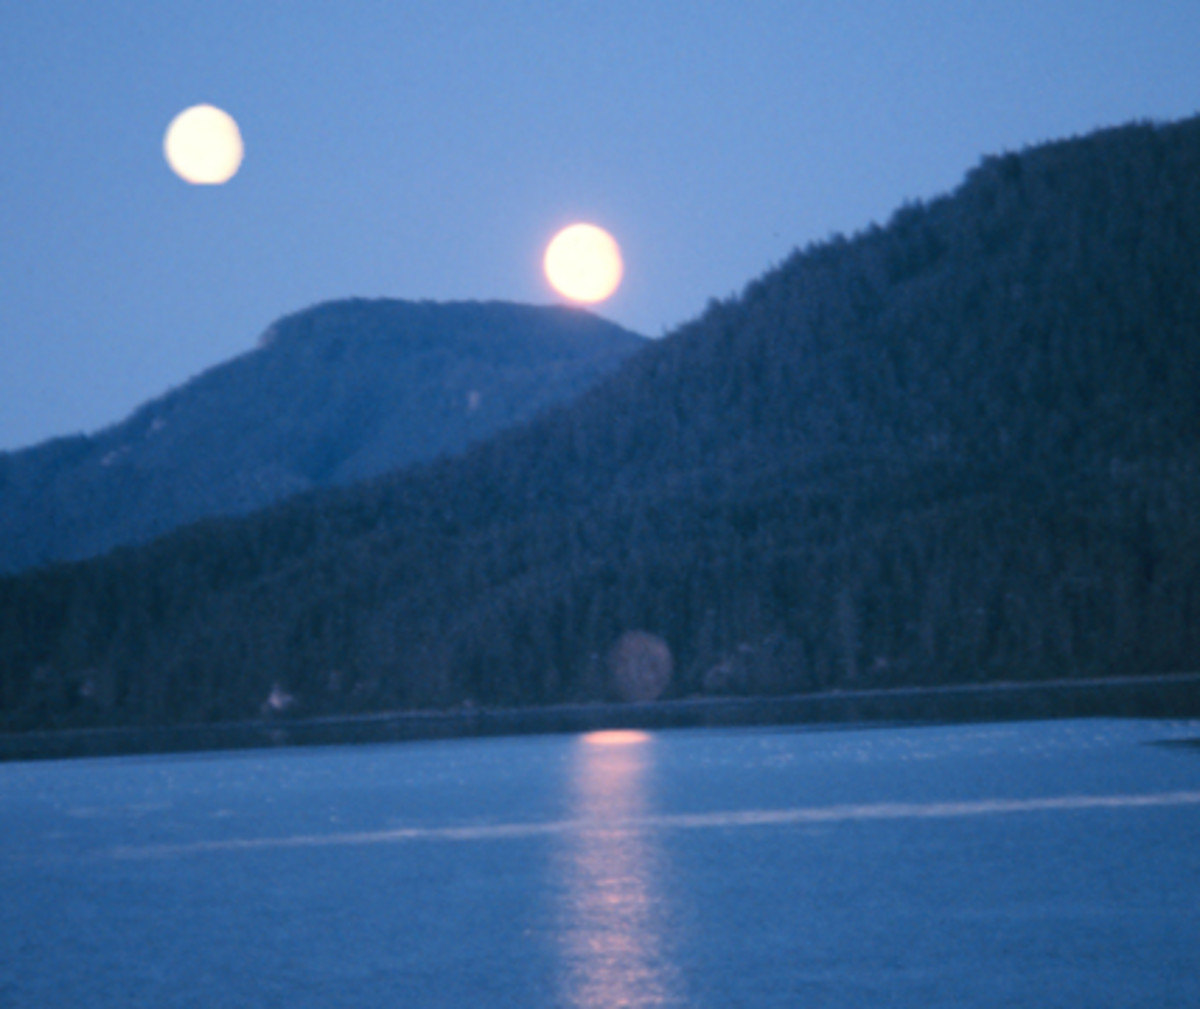 What would the earth look like if it had two moons. What kind of effect would two moons have on the planet earth.